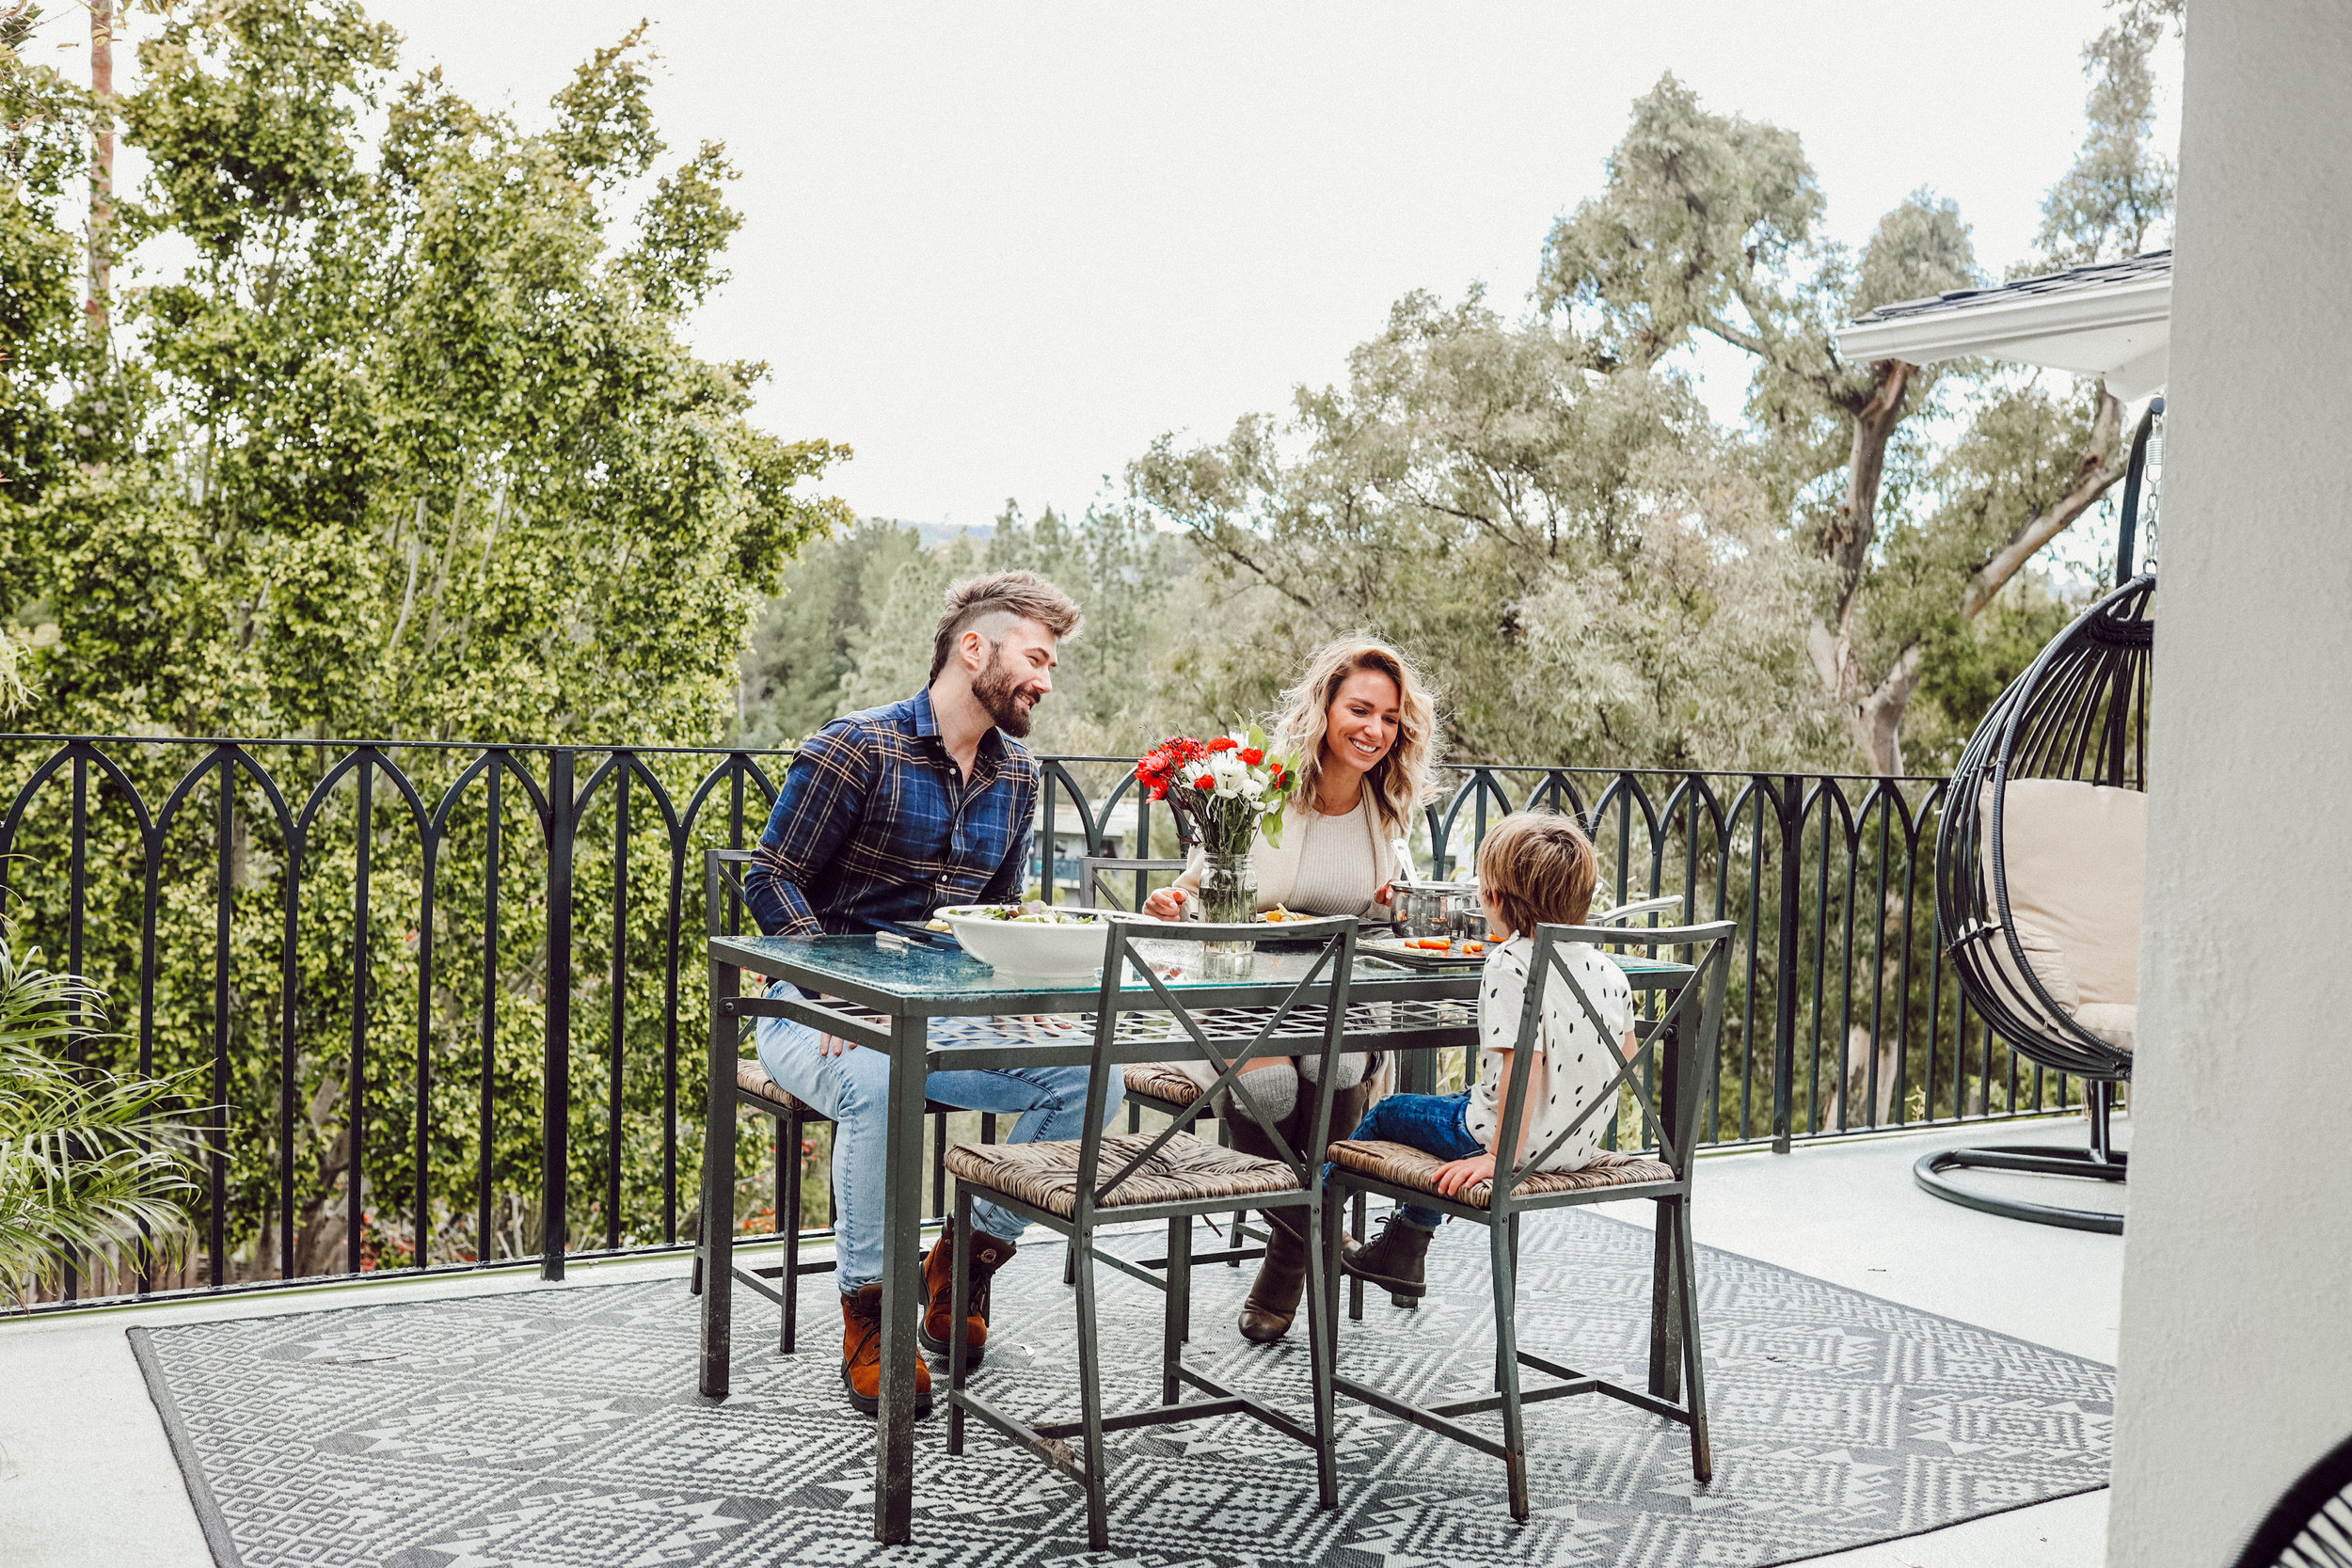 Can you picture your family dining on this beautiful balcony?  Photo cred. Melanie Maroon